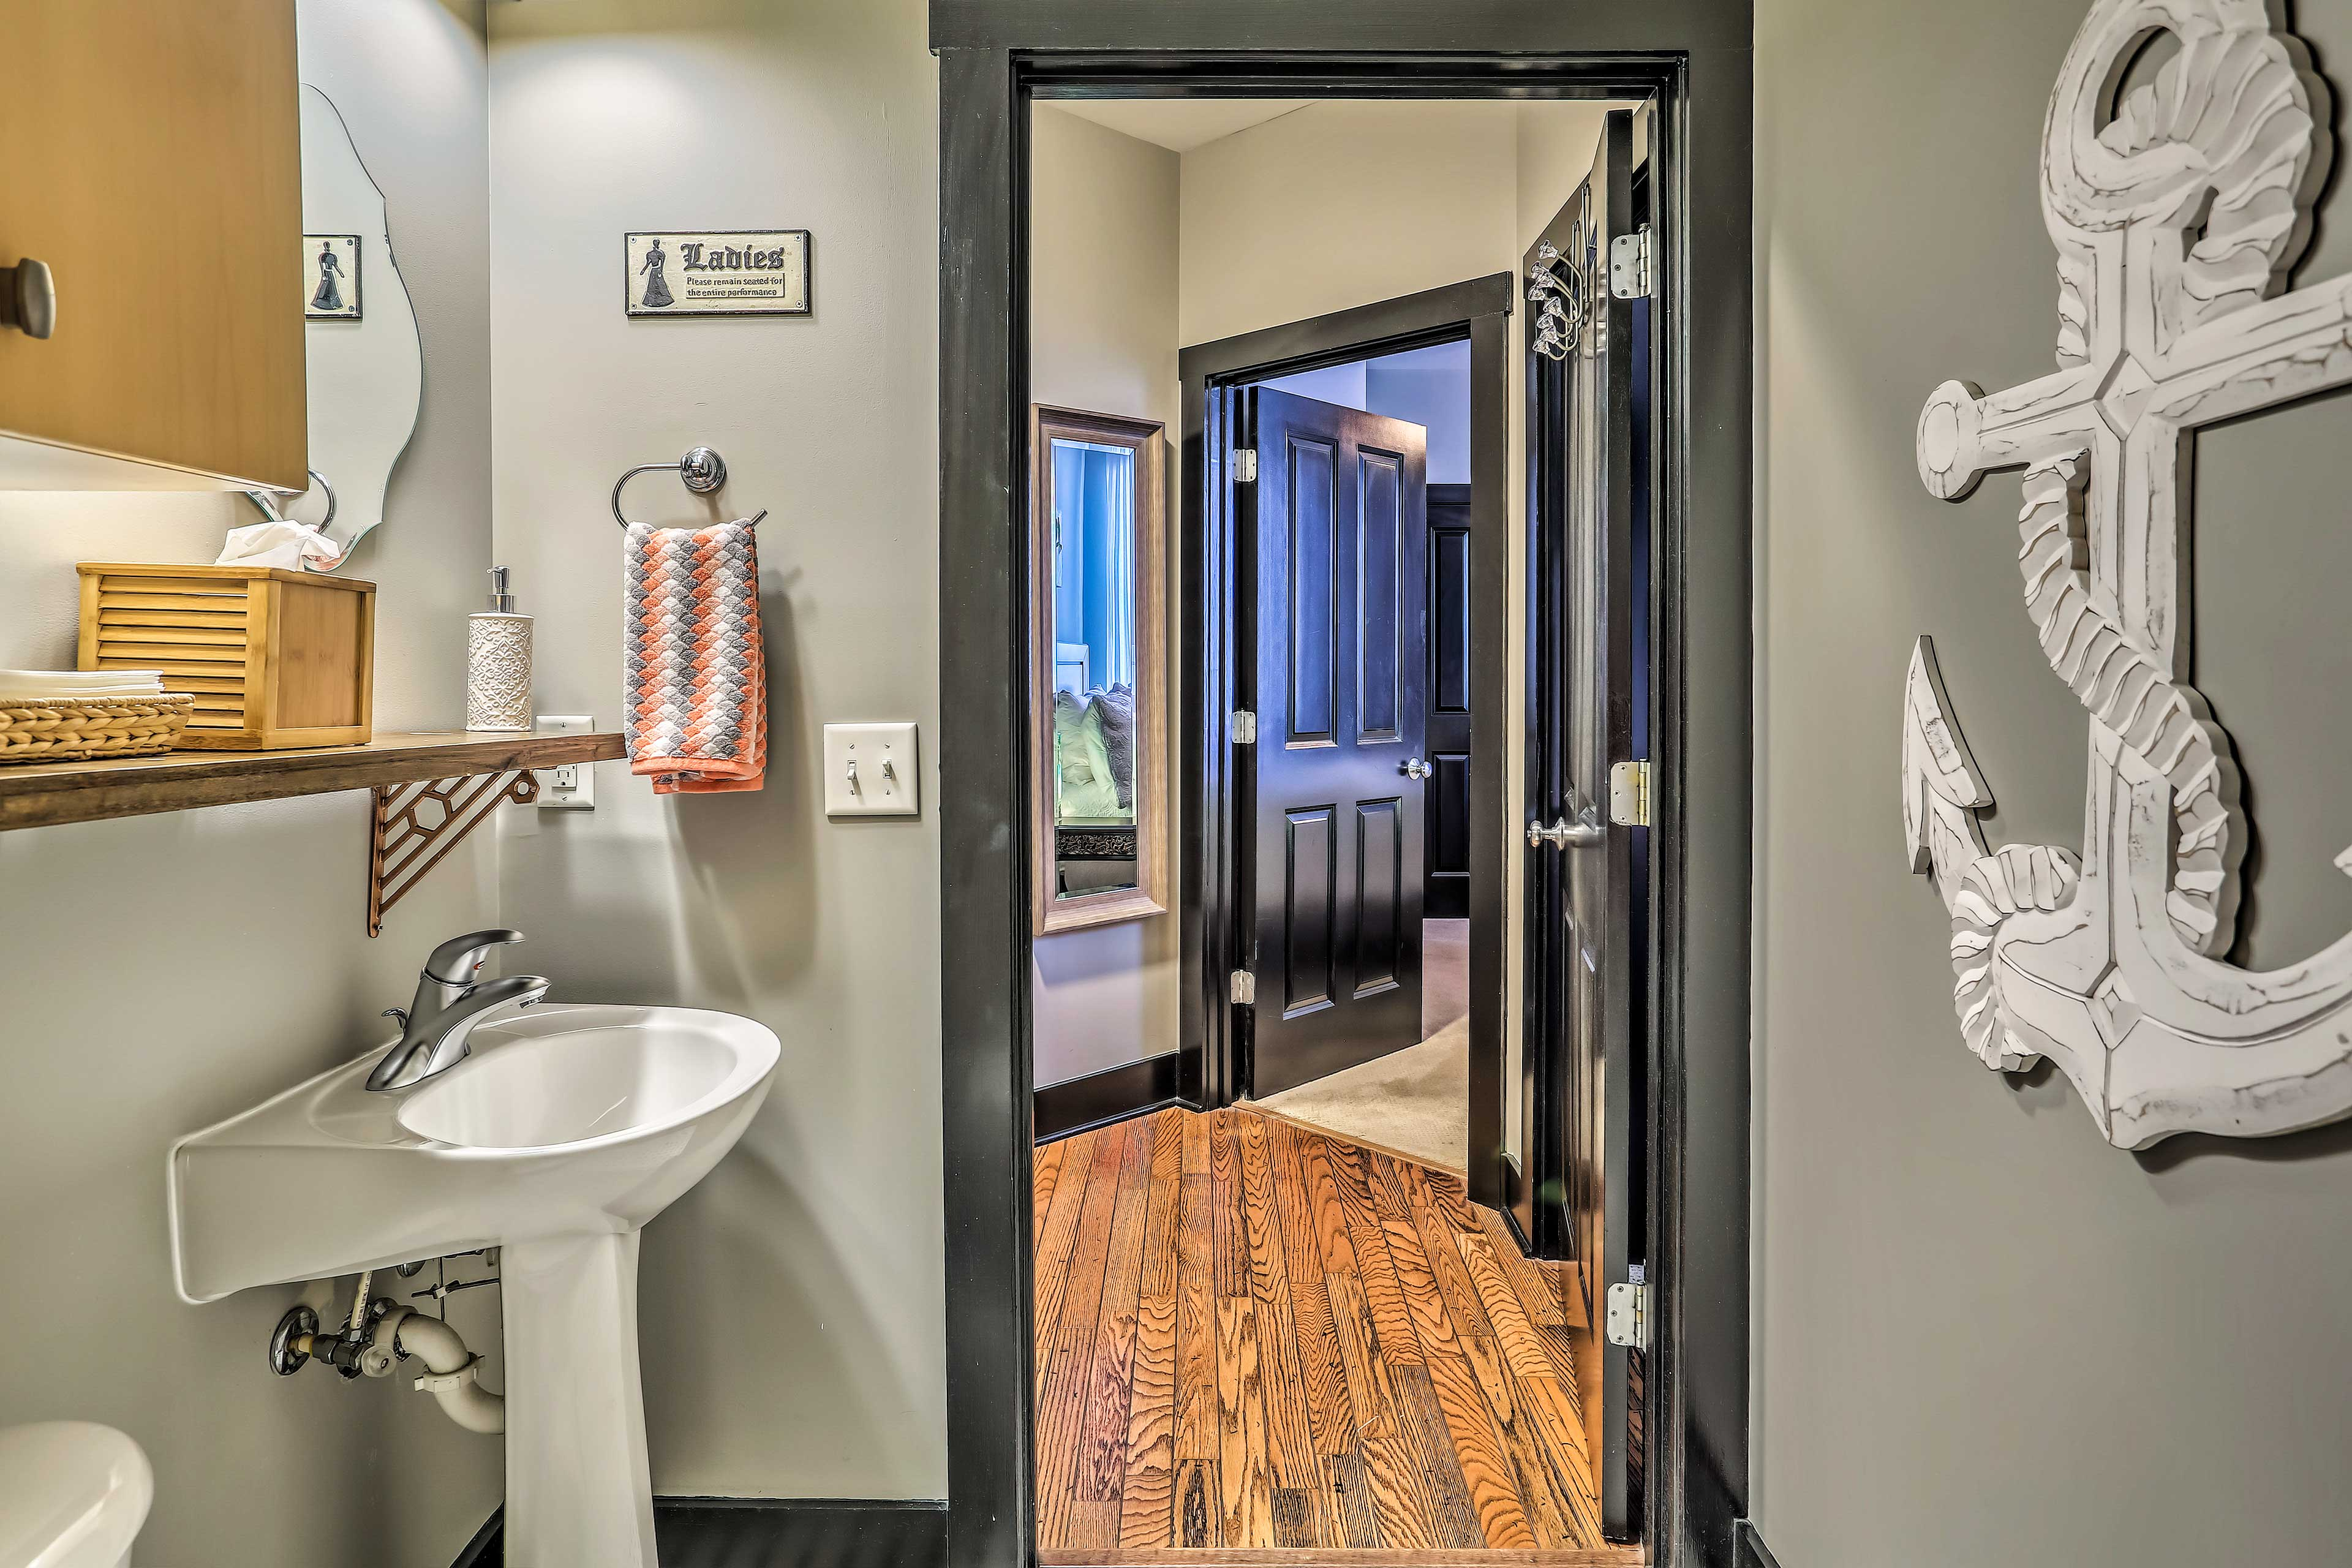 The second full bathroom is accessible from every room.